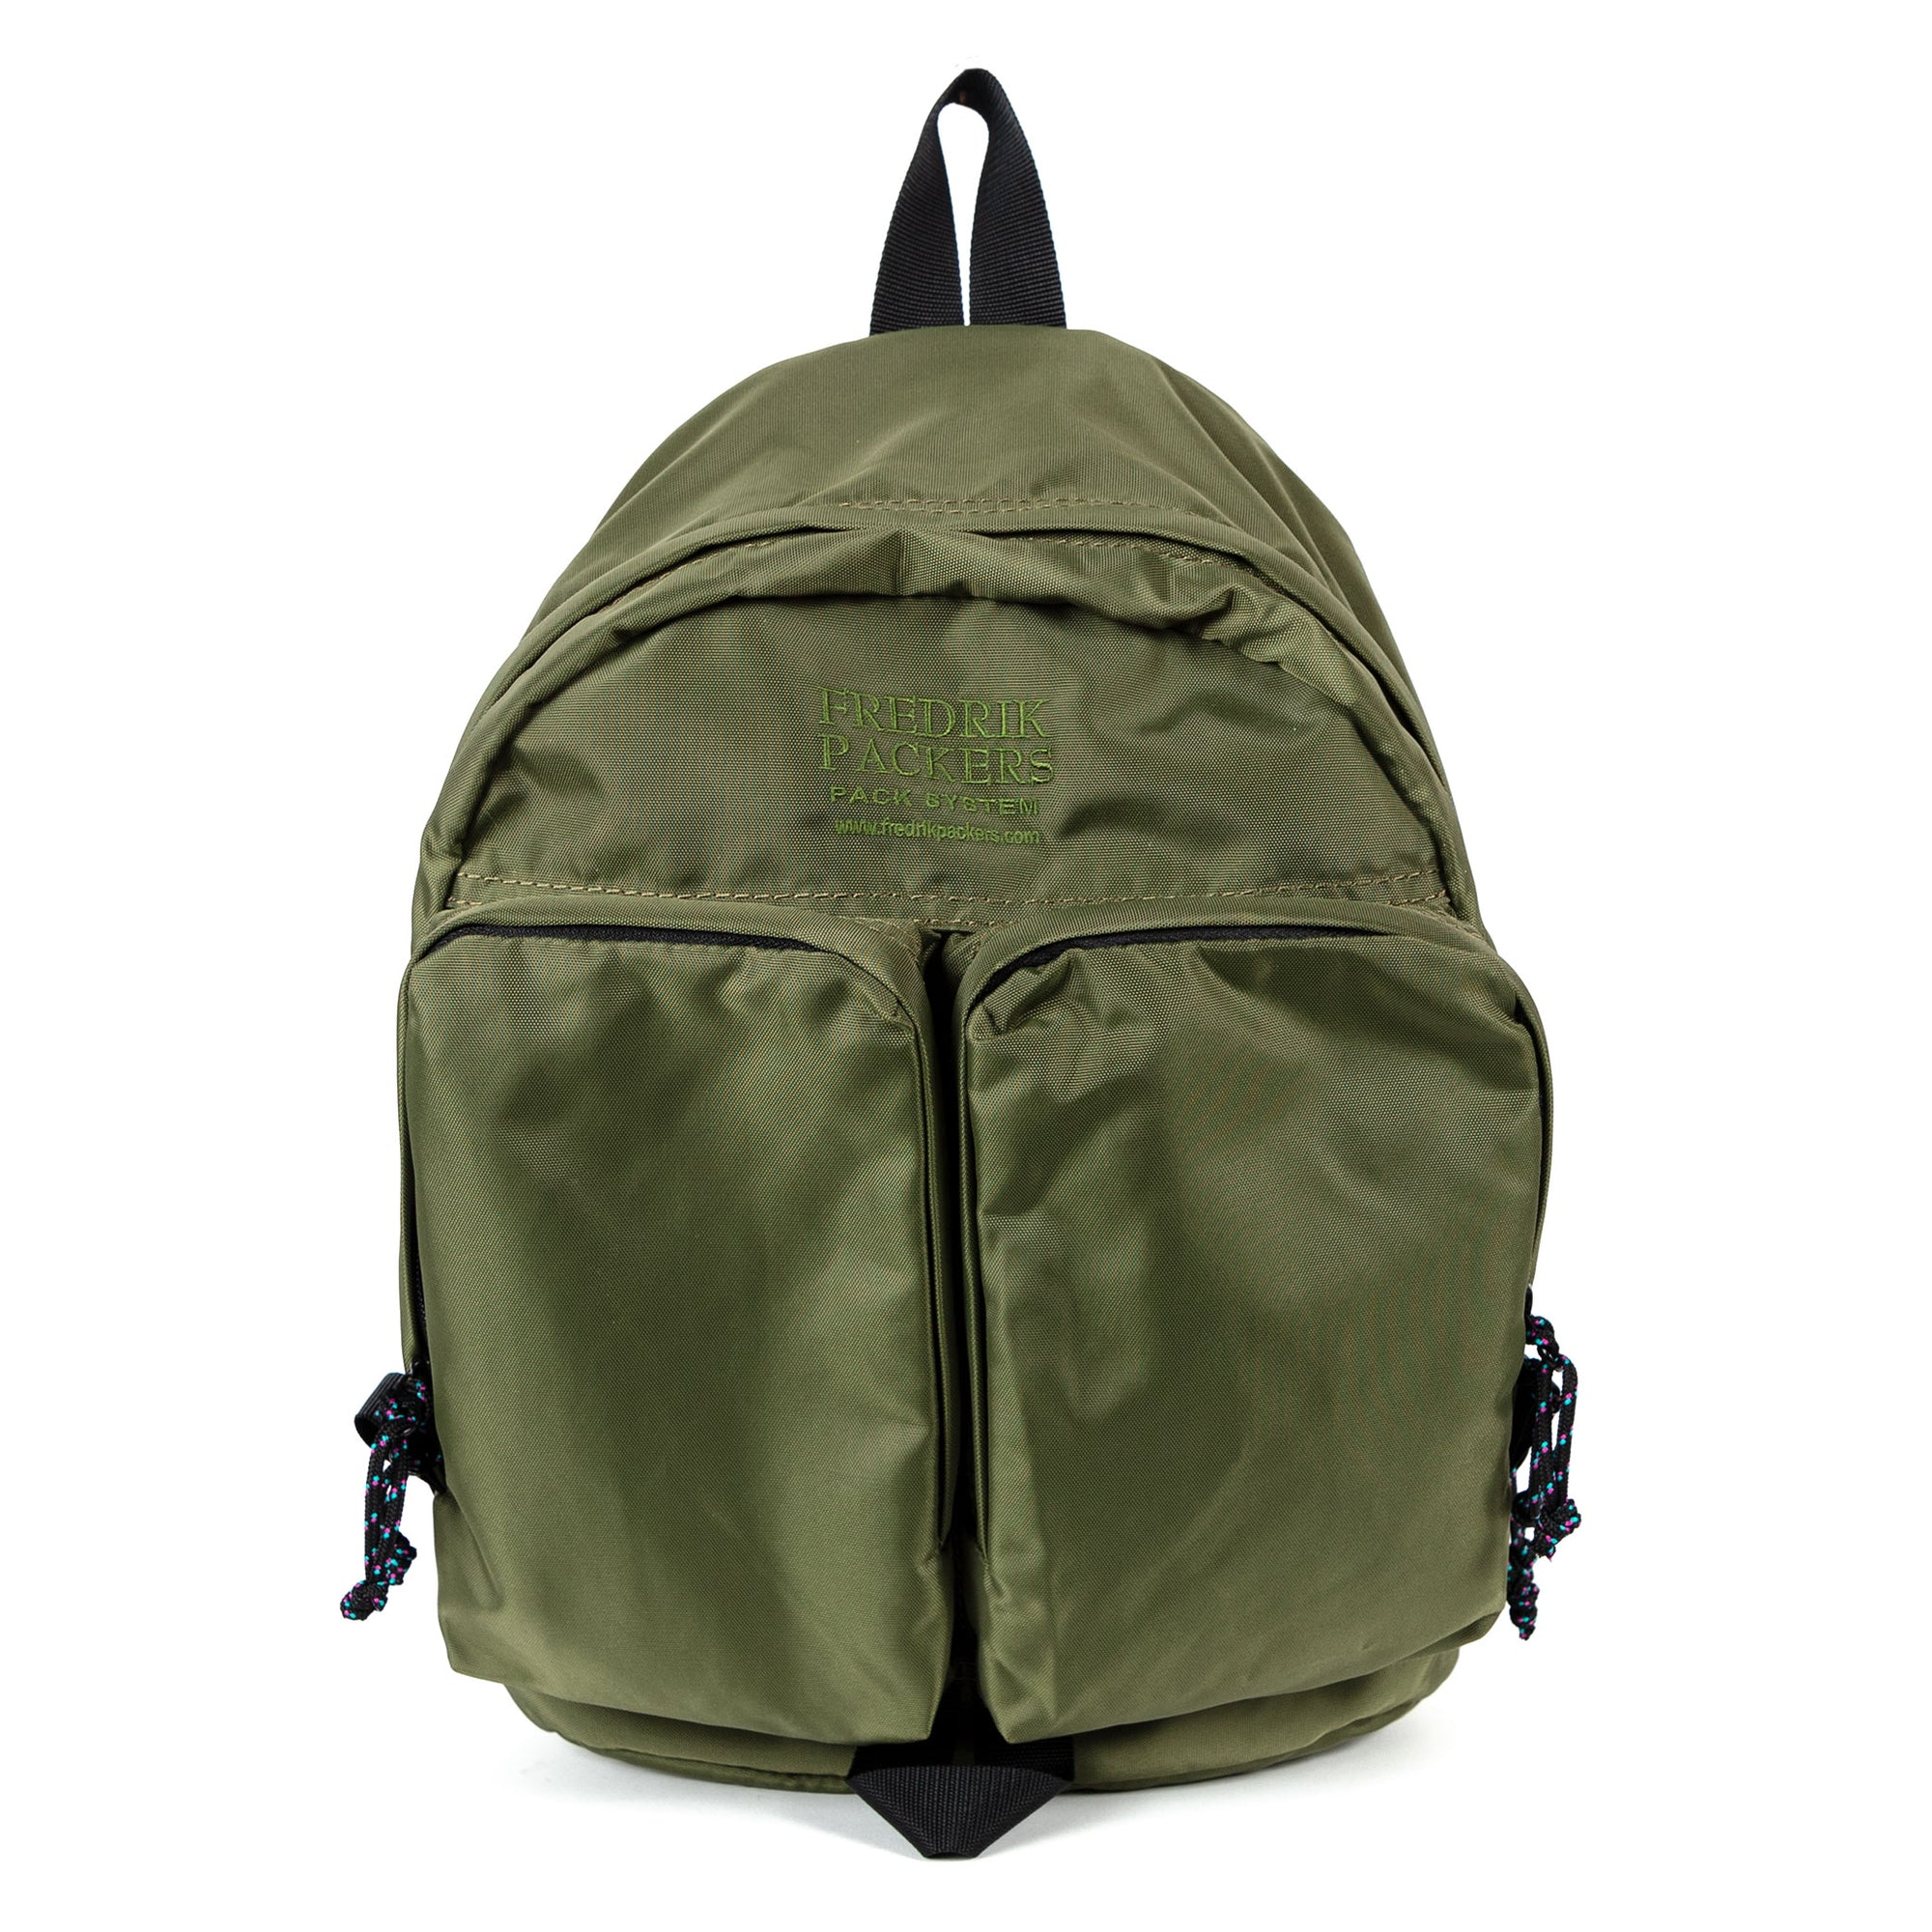 Fredrik Packers Twins Backpack in Olive